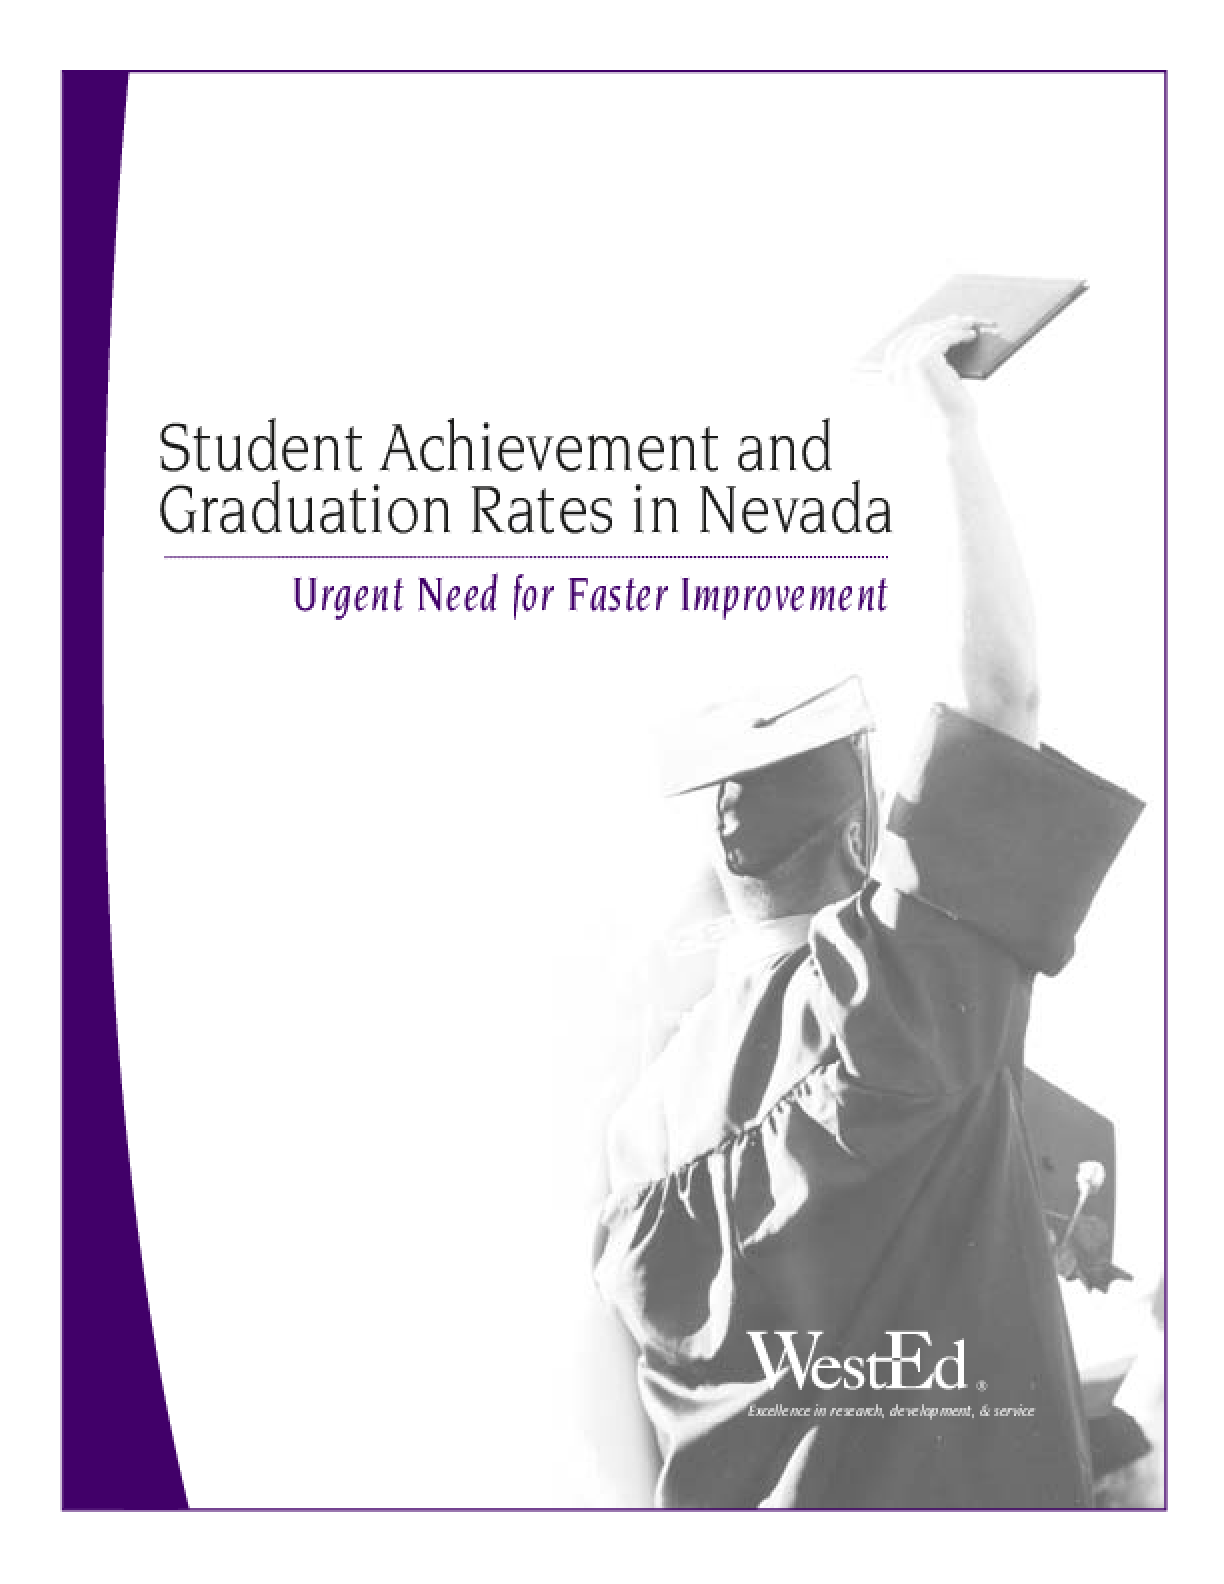 Student Achievement and Graduation Rates in Nevada: Urgent Need for Faster Reform